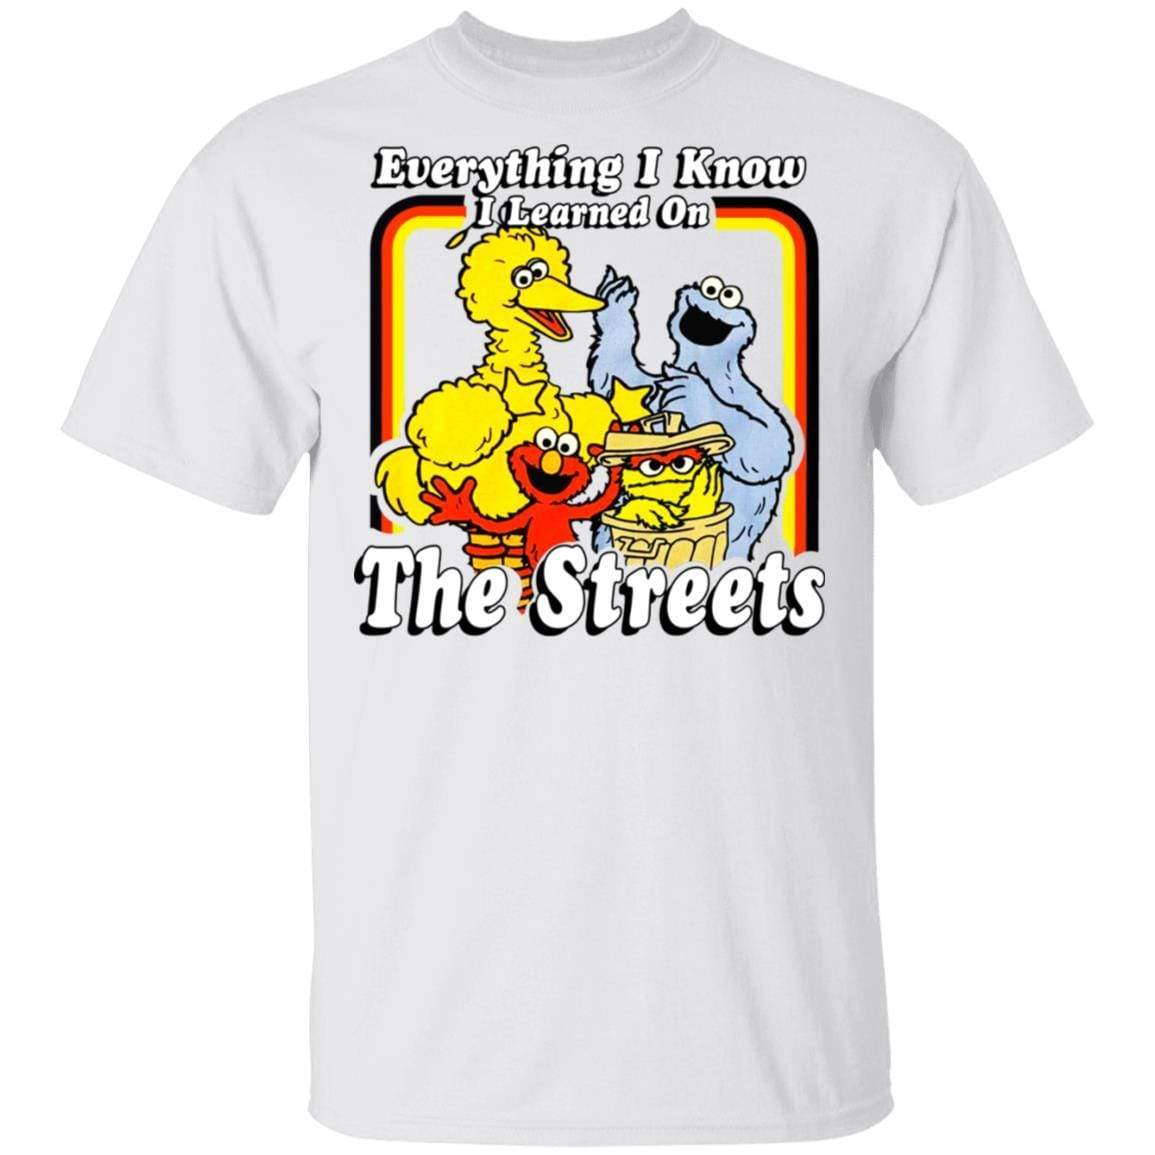 Everything I Know I Learned On The Streets T-Shirts, Hoodies 1049-9974-87589426-48300 - Tee Ript